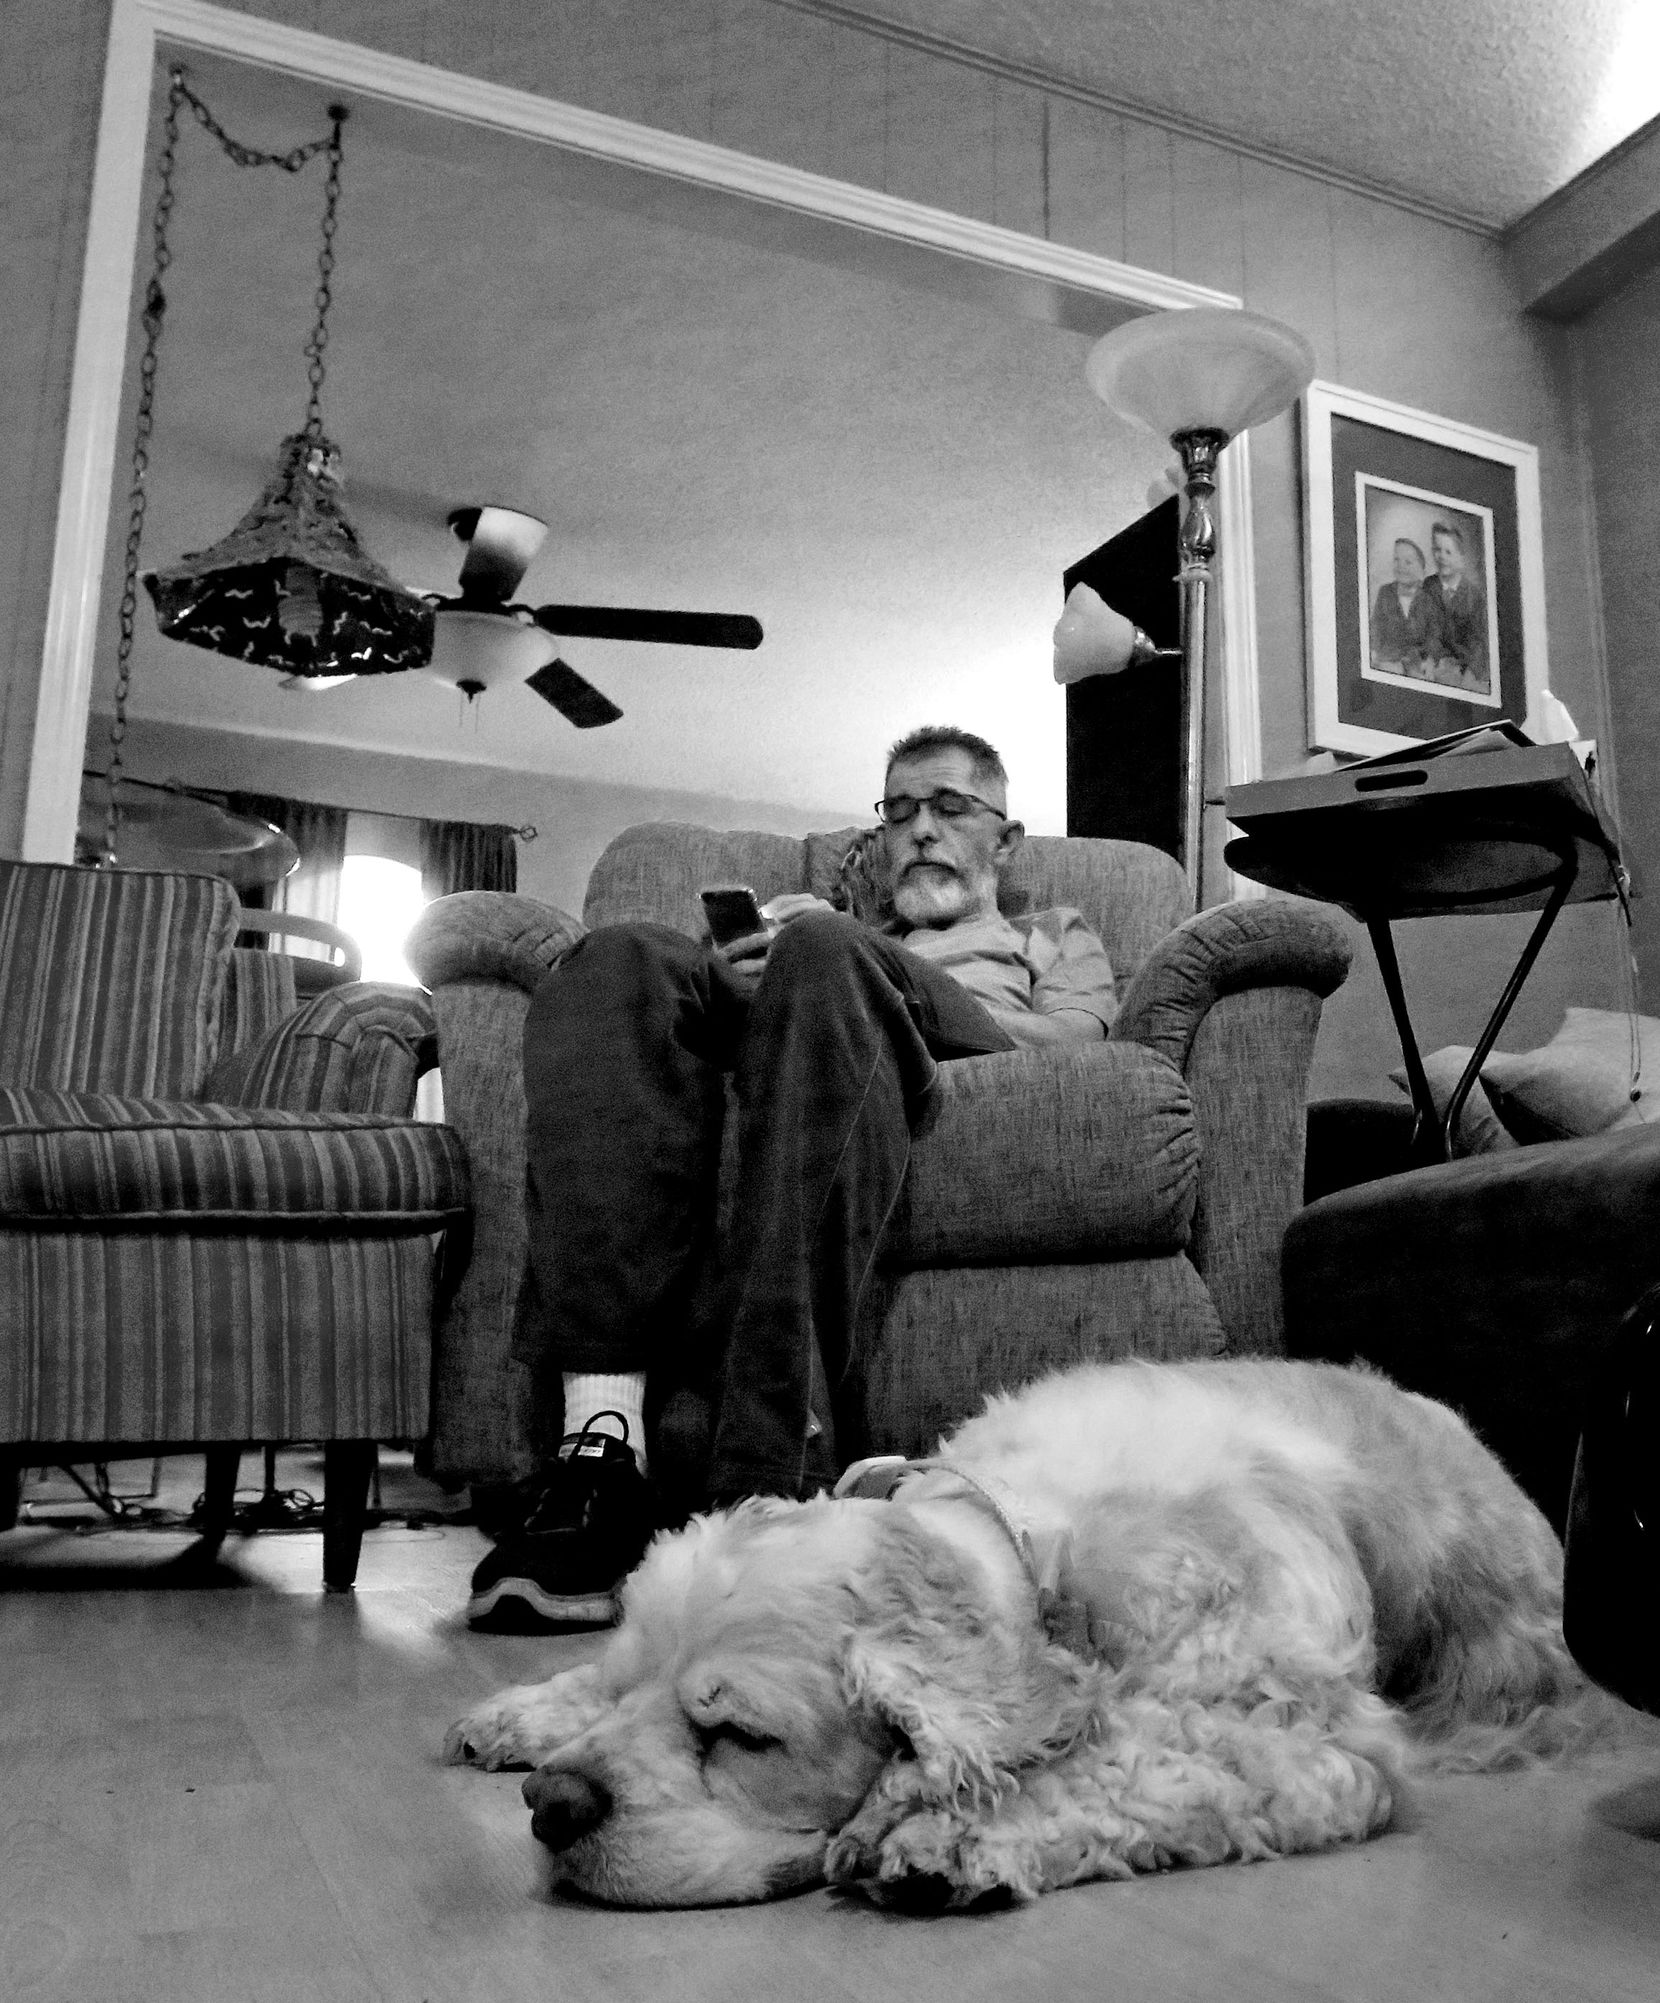 Weiss scans social media while relaxing at his home. (Louis DeLuca/Staff Photographer)